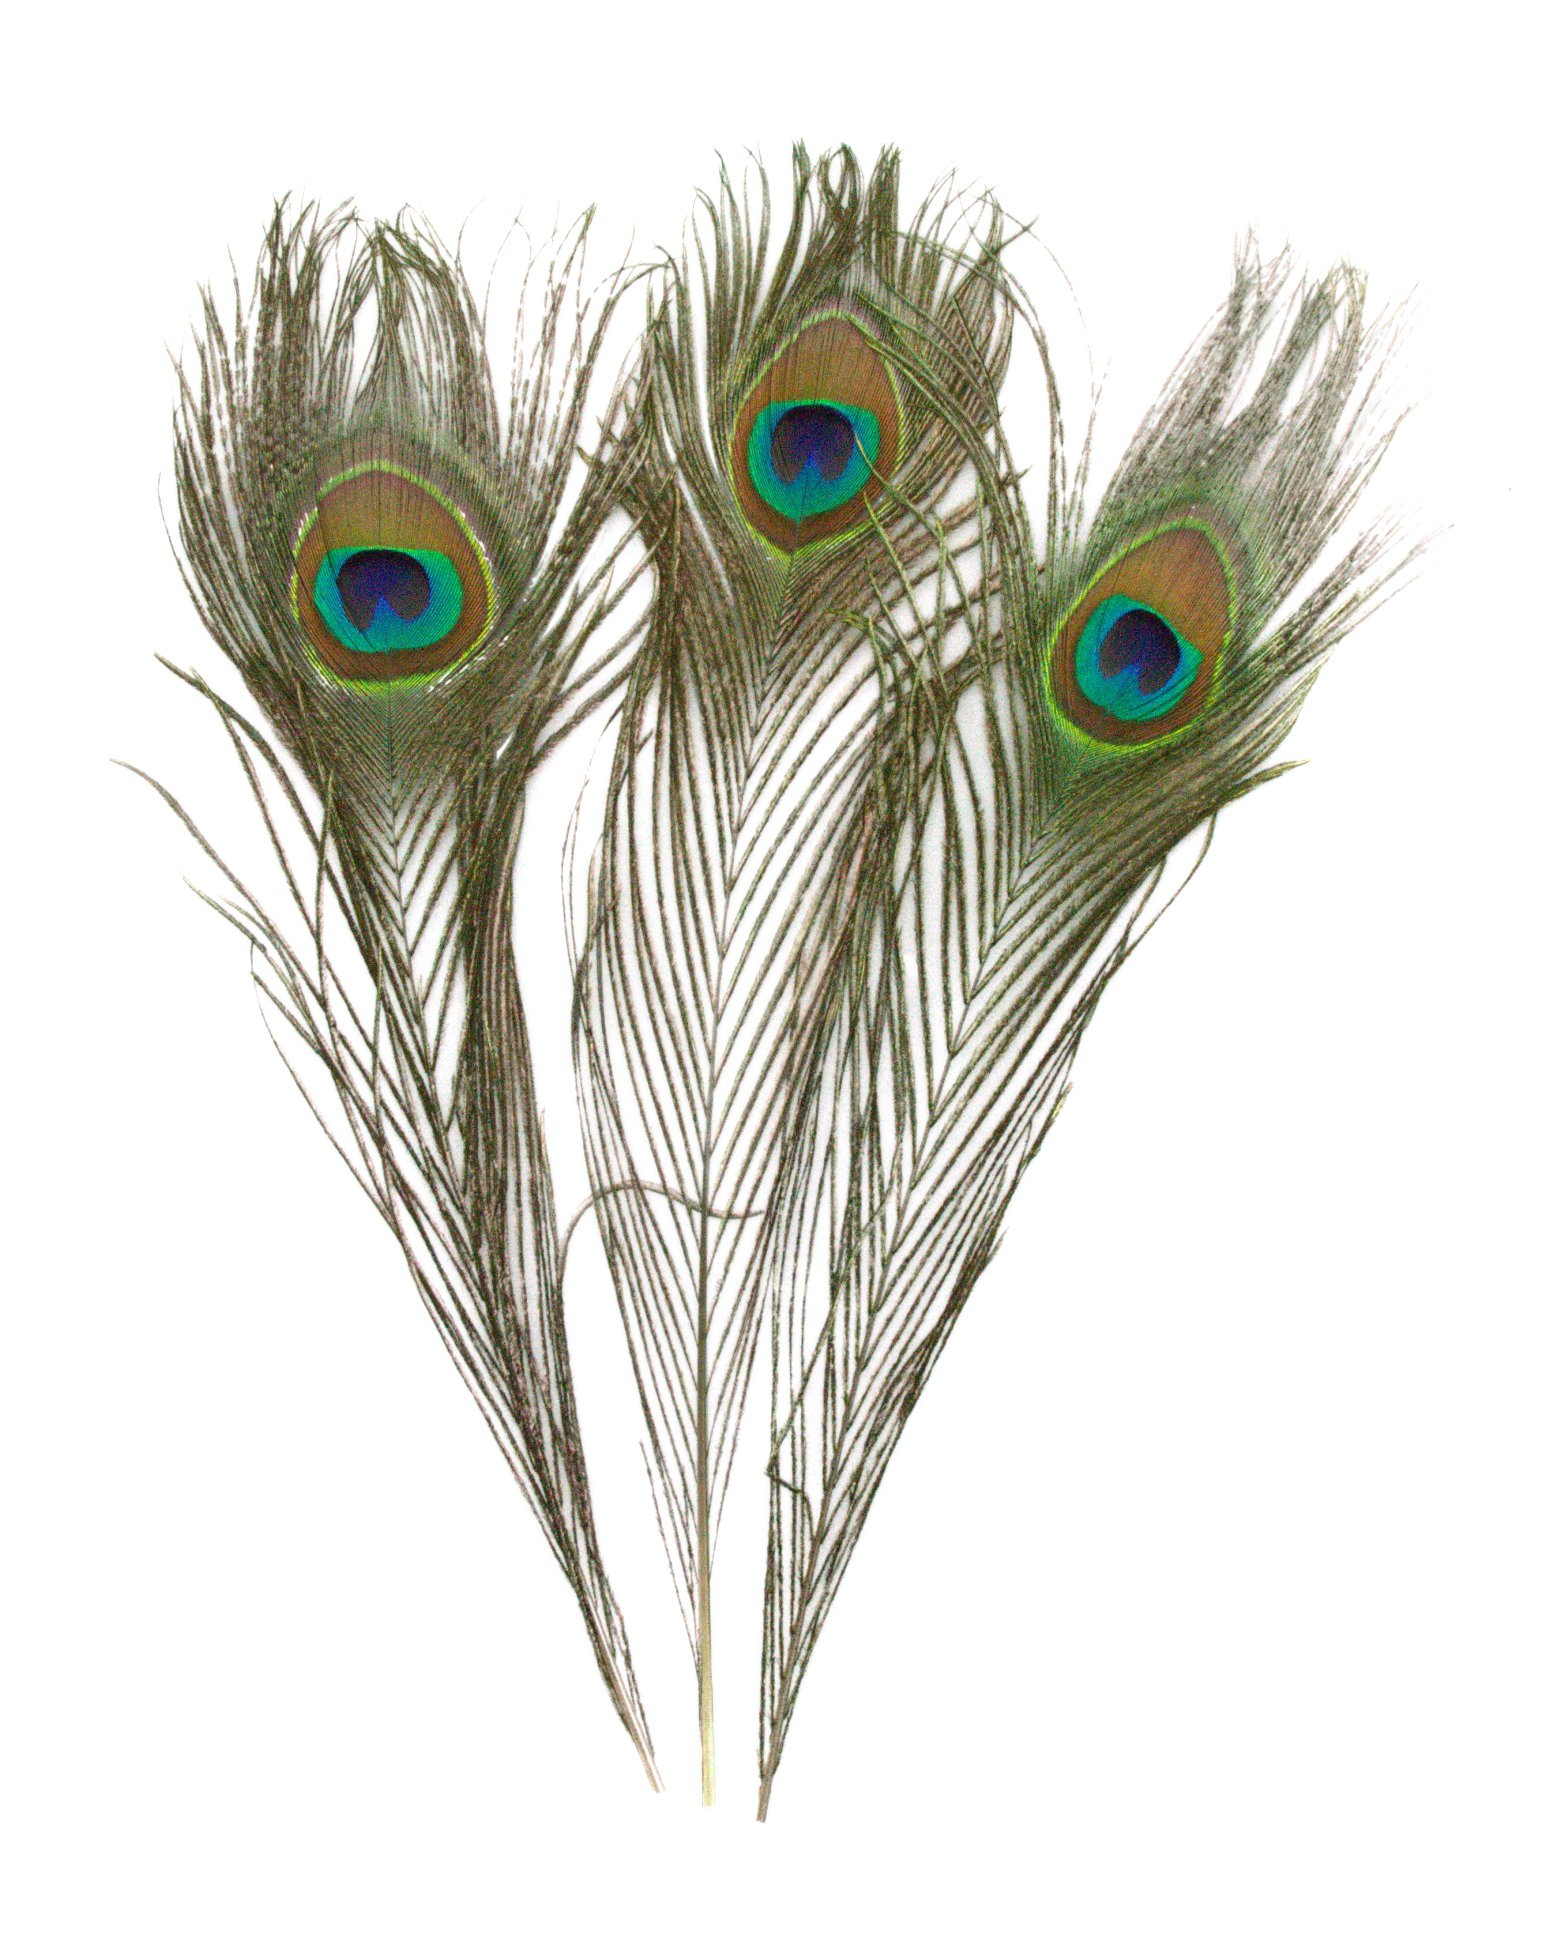 Kayso Inc 100% Genuine Natural Peacock Feathers 10'' to 12'' Length (2000 pcs)